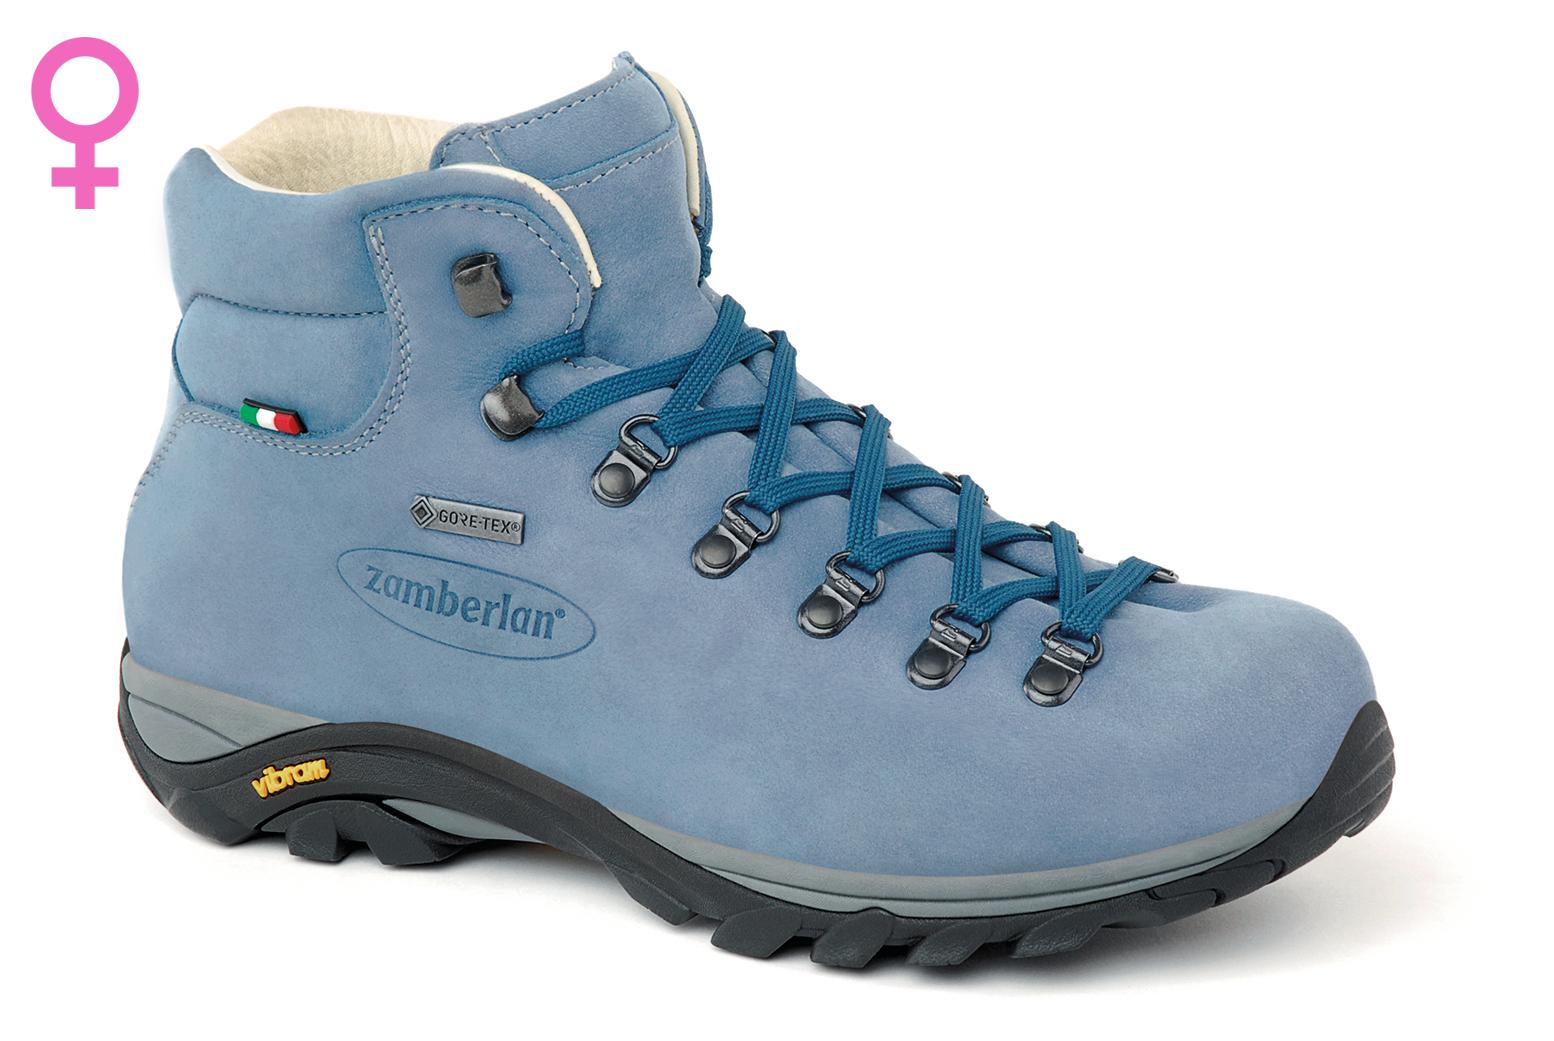 320 TRAIL LITE EVO GTX WNS   -   Bottes Hiking   -   Light blue